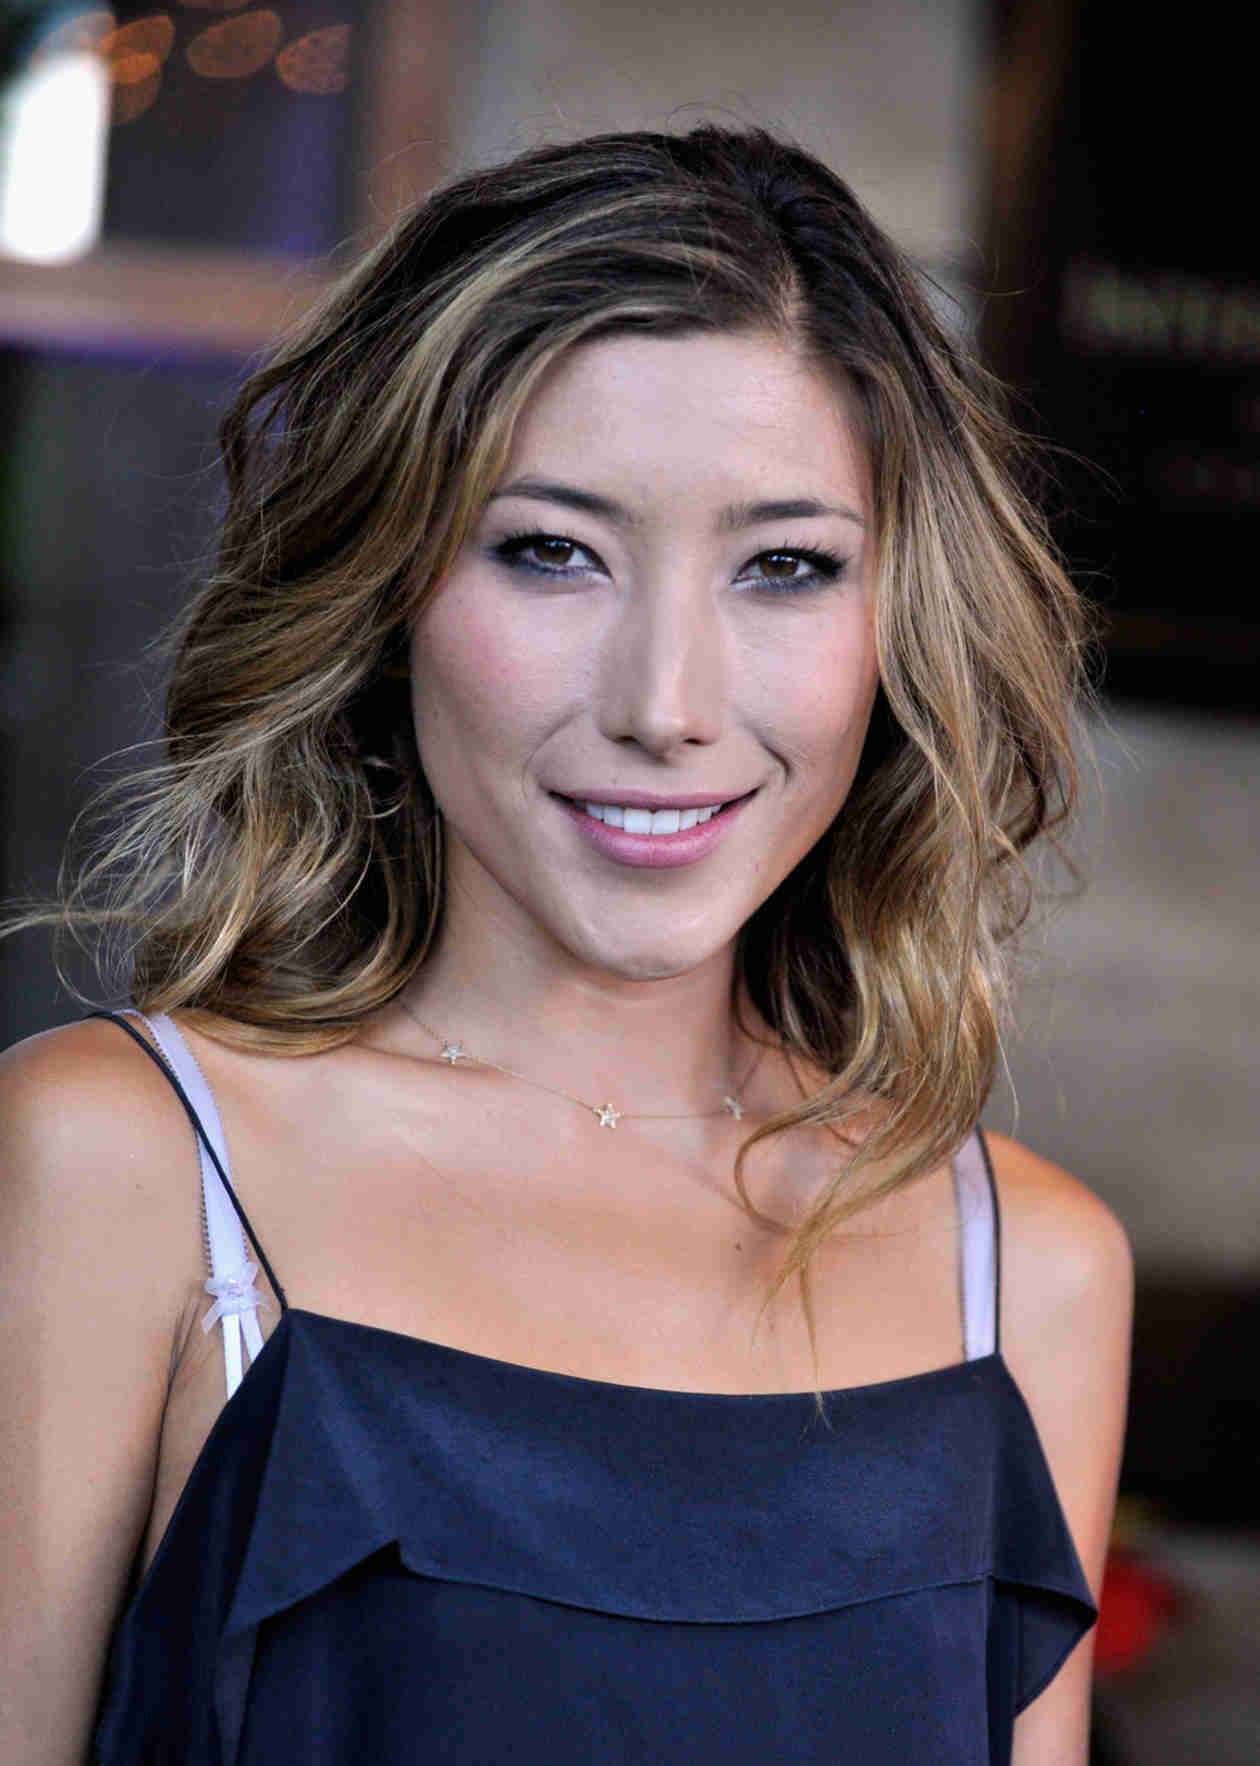 Dichen Lachman, Star of The 100 and Dollhouse, Engaged to Maximilian Osinski